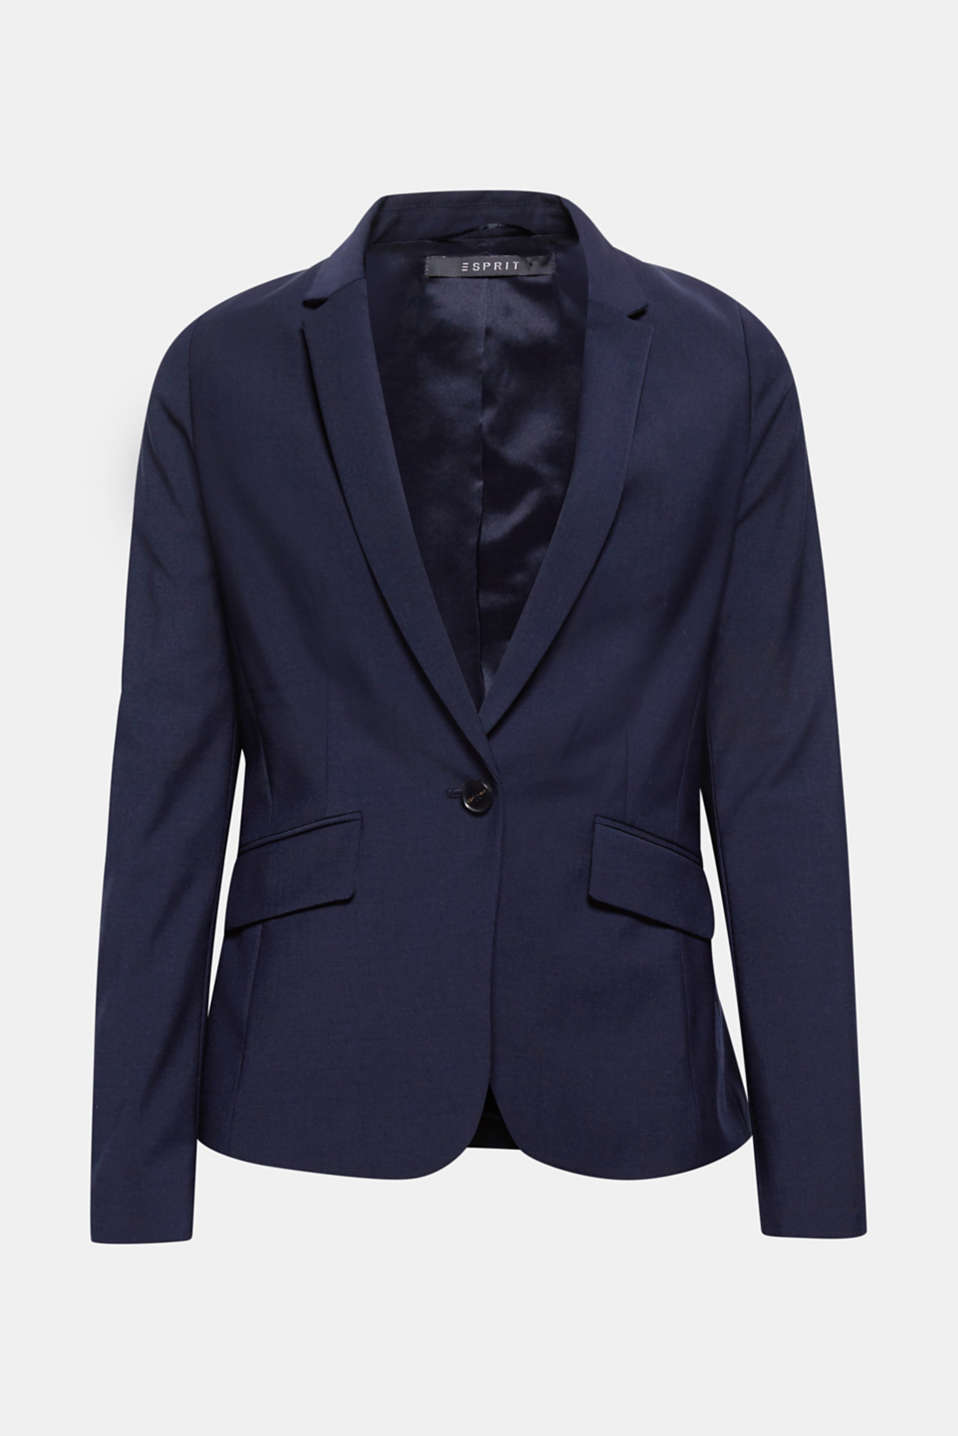 Move freely the way you like and feel great and well dressed in this bi-stretch blazer!